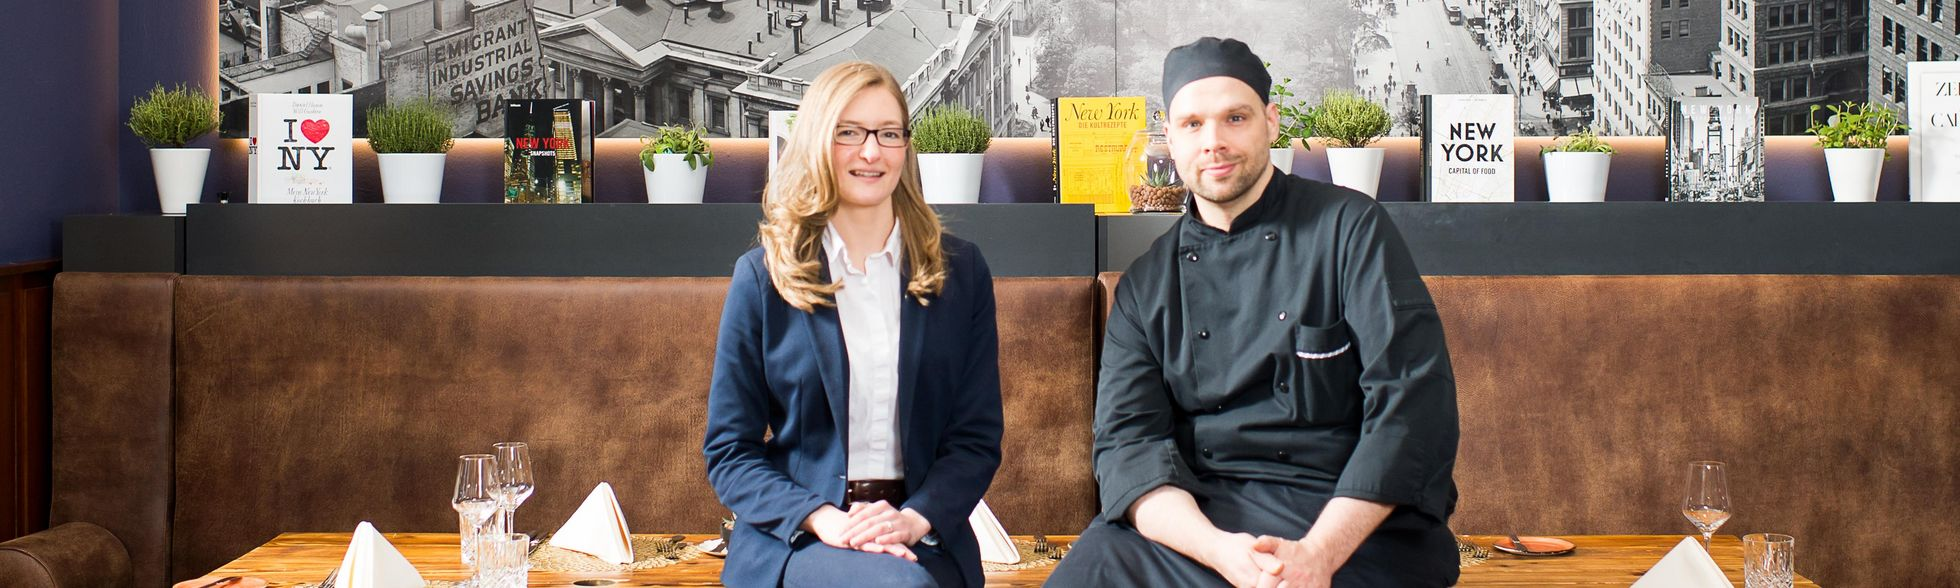 Restaurant Team, Johannes Hanspach, Stephanie Klüh